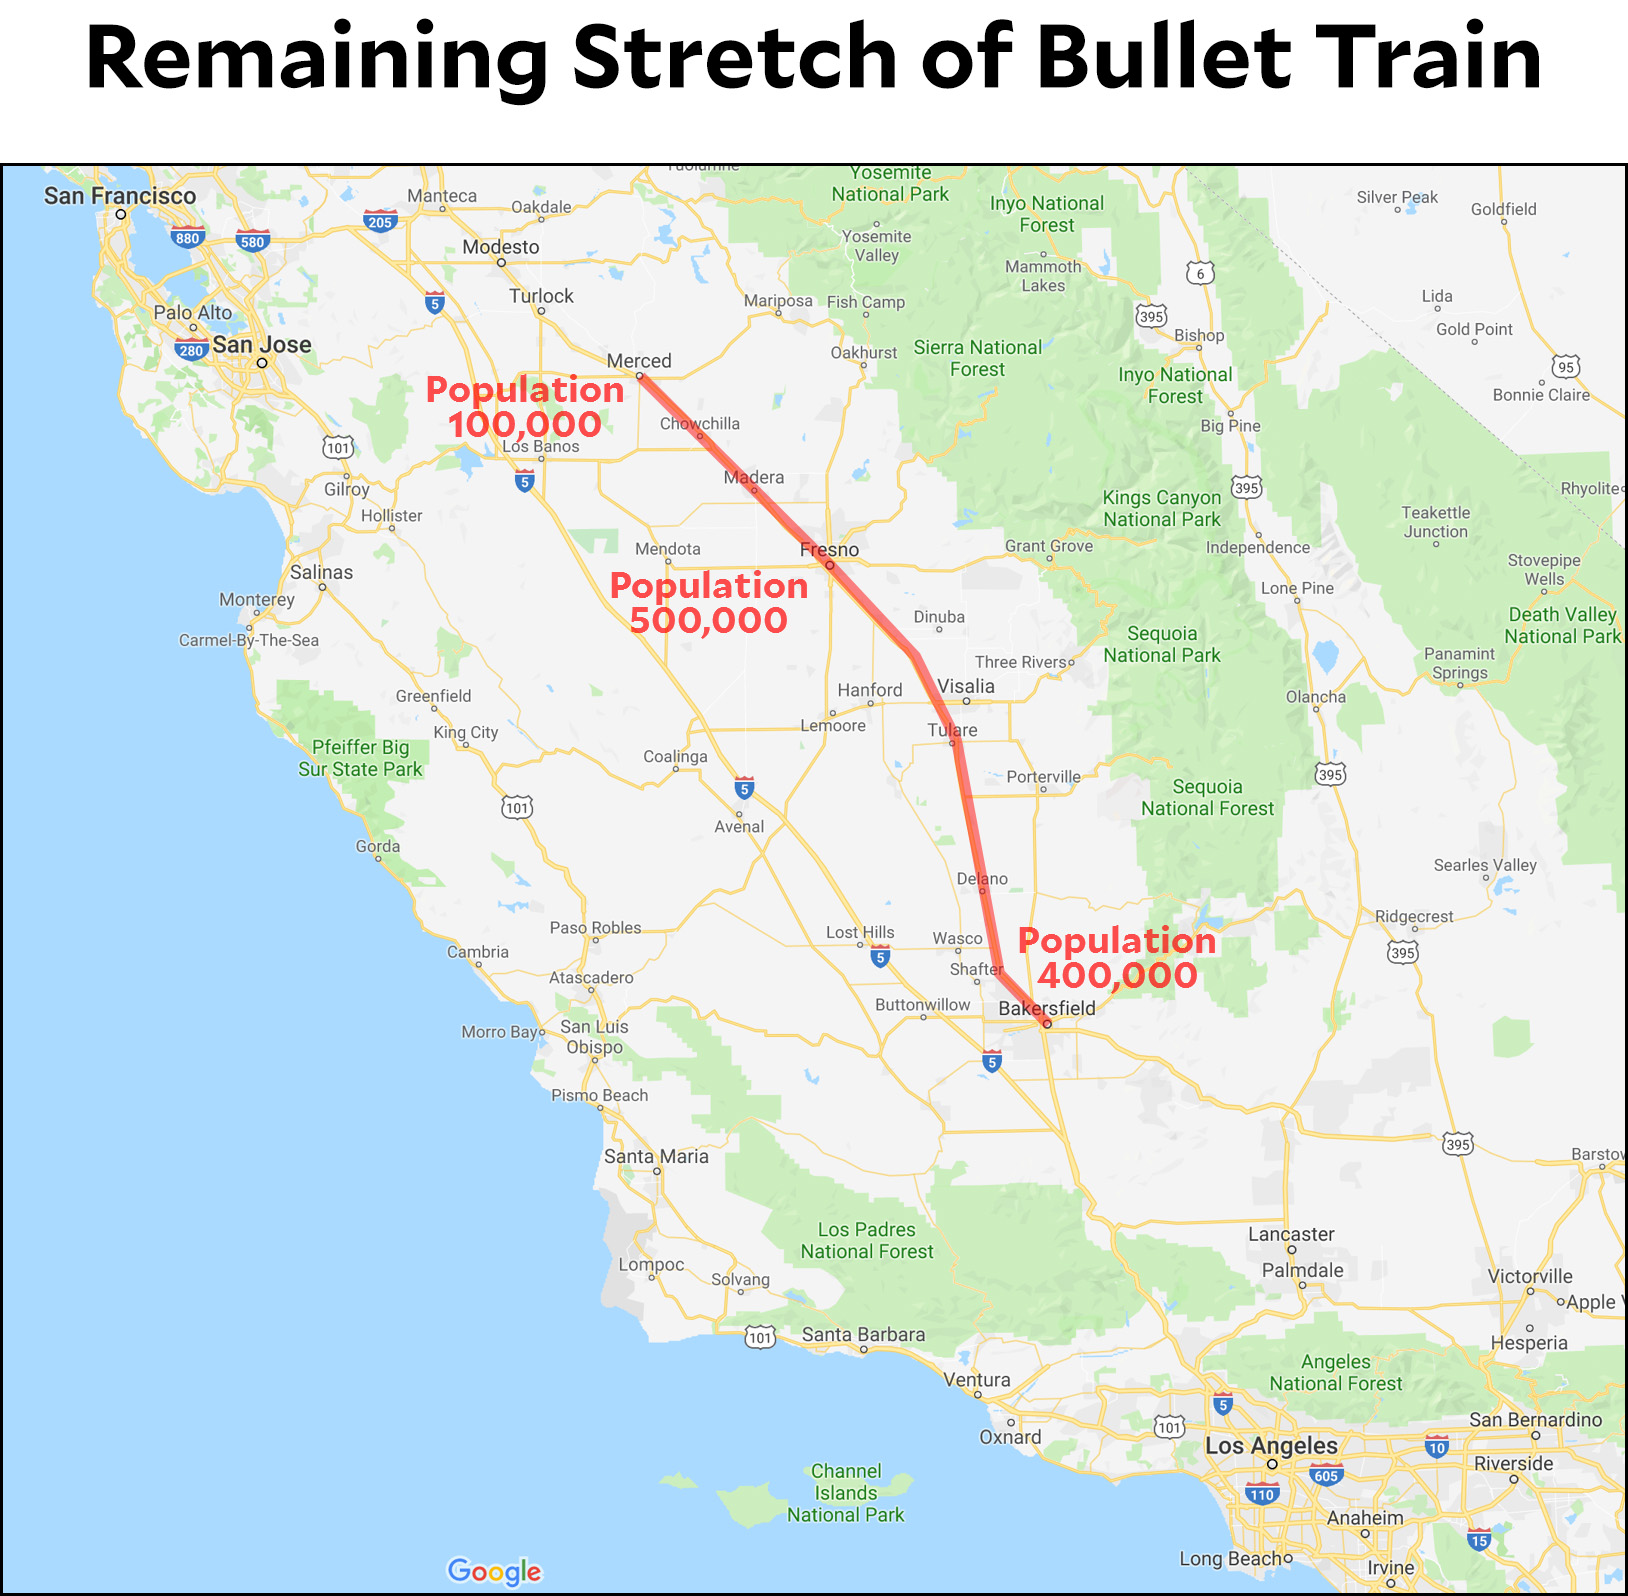 California's Bullet Train Is Dead. Sort Of. – Mother Jones on california tourist map, california northern railroad map, california waterfalls map, japan bullet train map, northern california train map, california train vacations, california high speed train map, california railway map, california amusement parks map, california train map freight tracking, ca bullet train map, california layout map, california missions map by train, california bullet train,